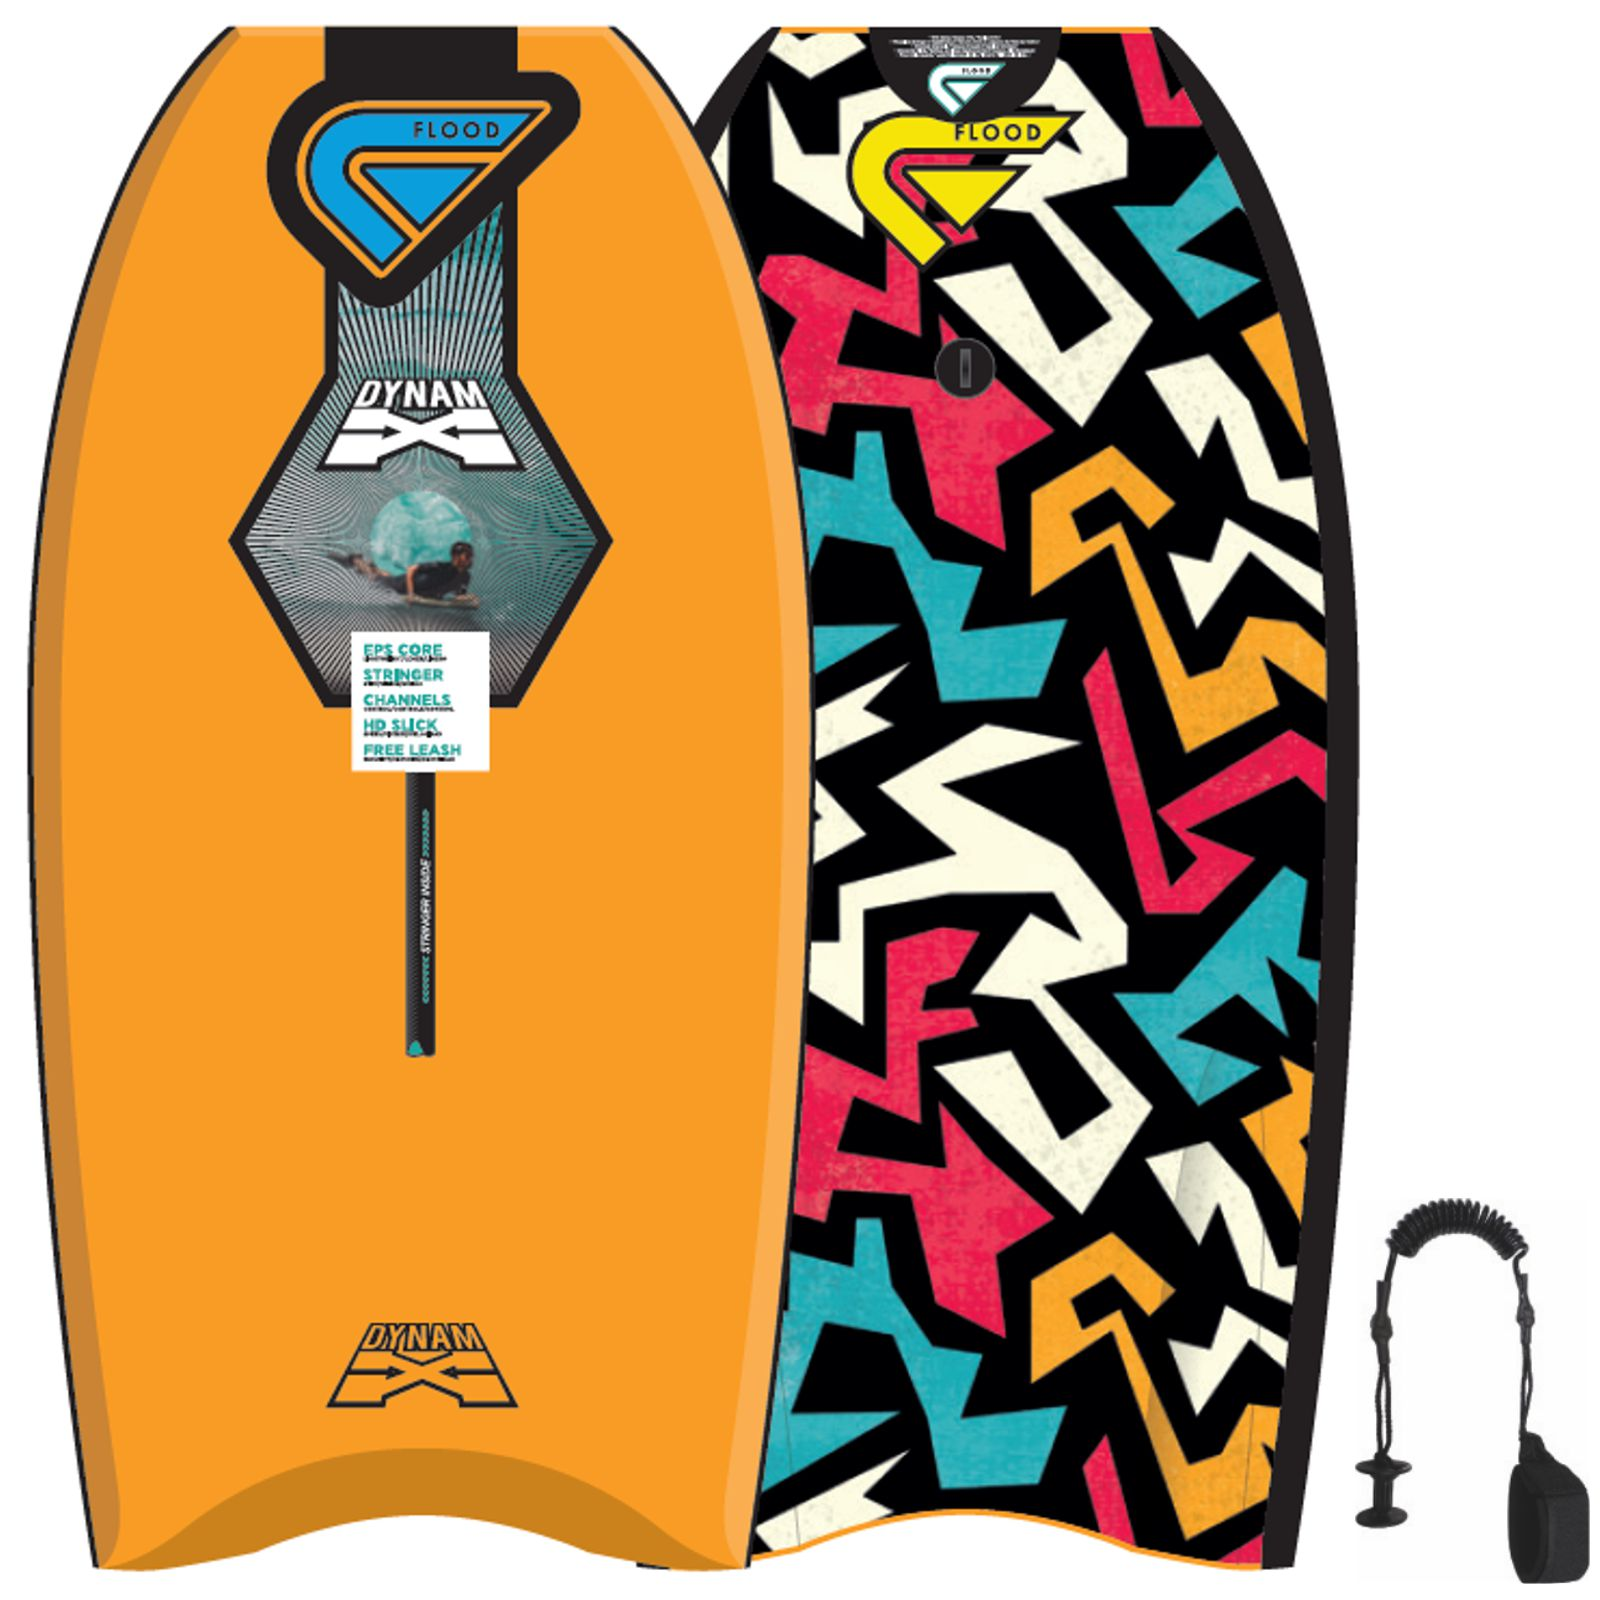 FLOOD Bodyboard Dynamx Stringer 42 Orange Tribal